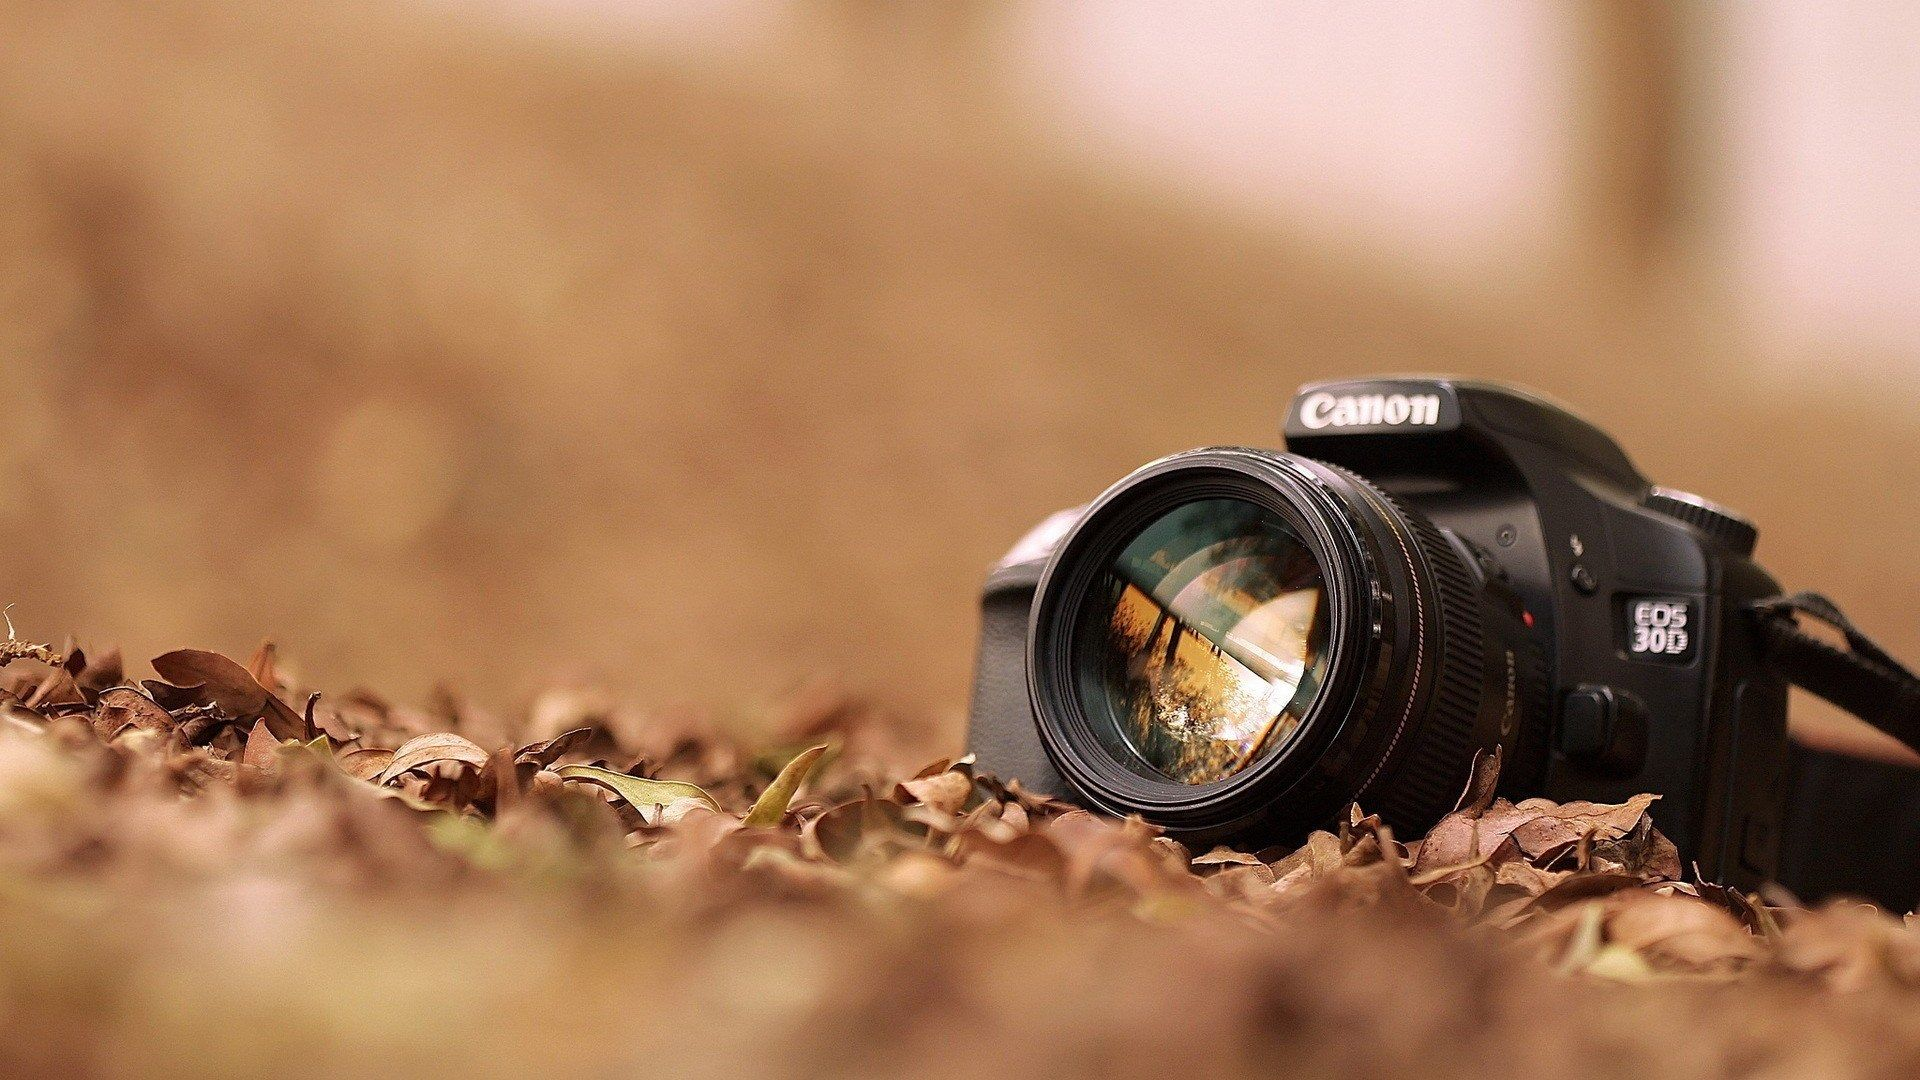 1920x1080 canon background download | wallpapers and backgronds ...